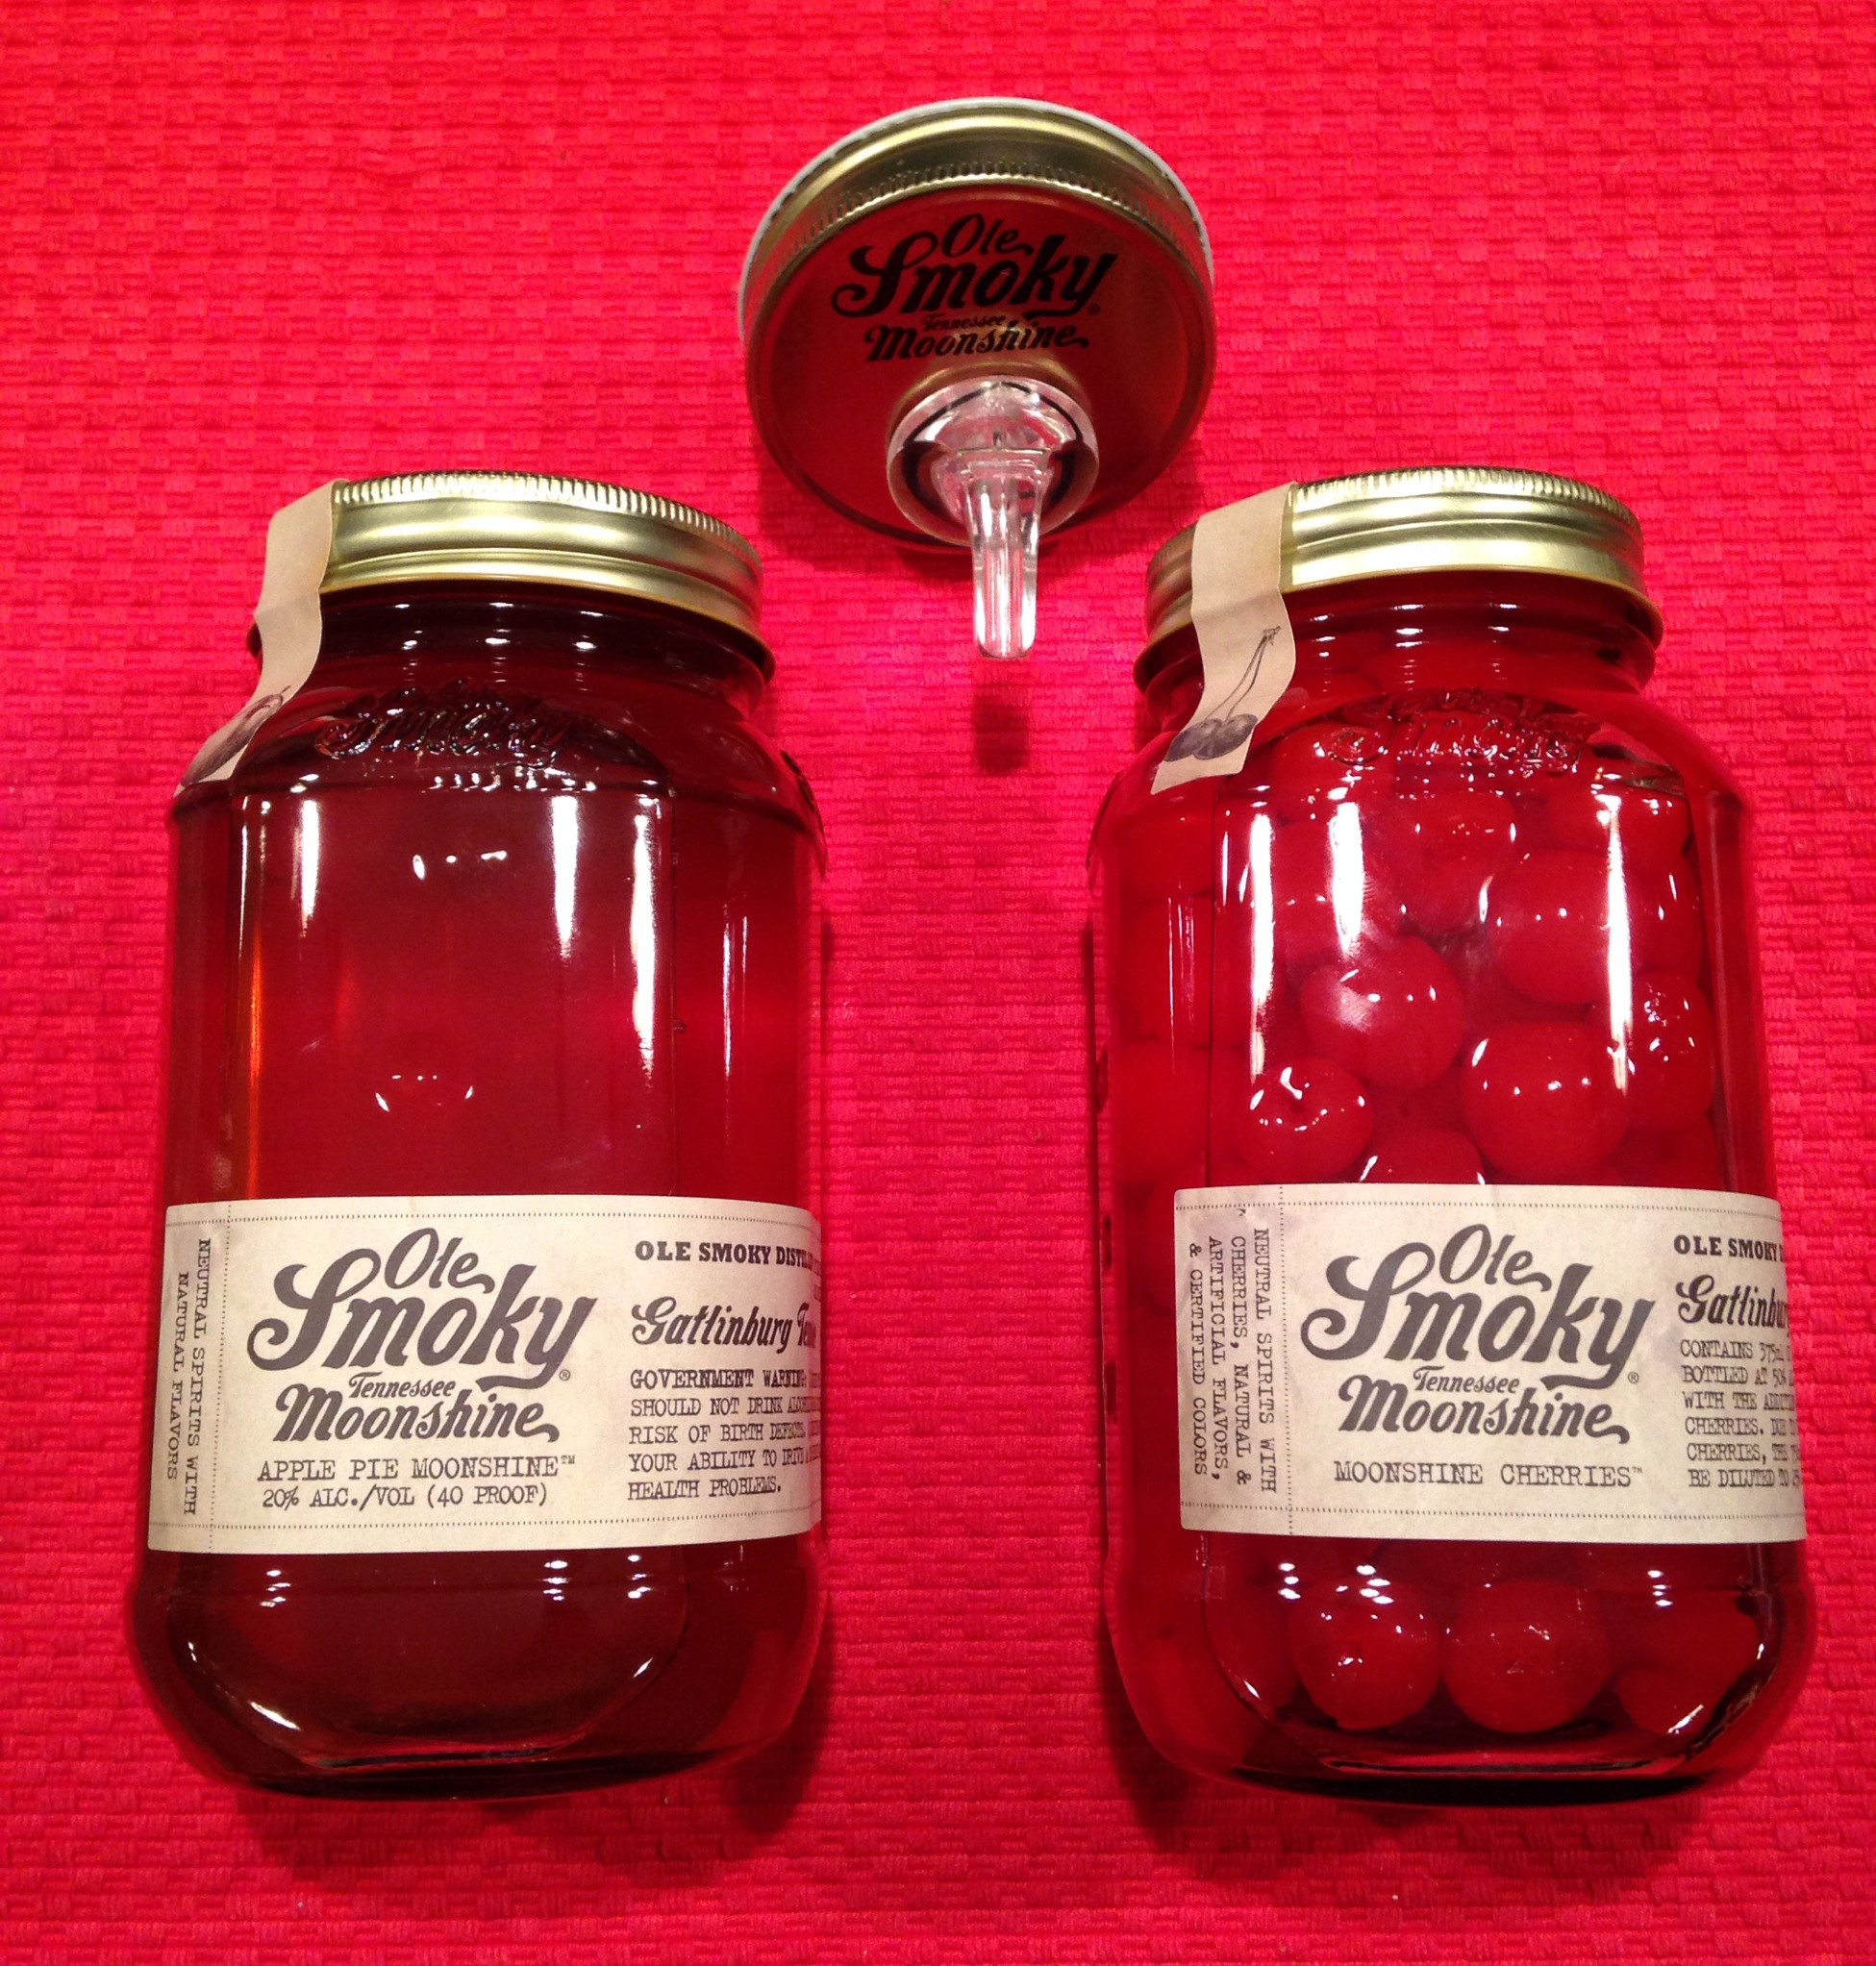 Here's our purchases from Ole Smoky Moonshine.